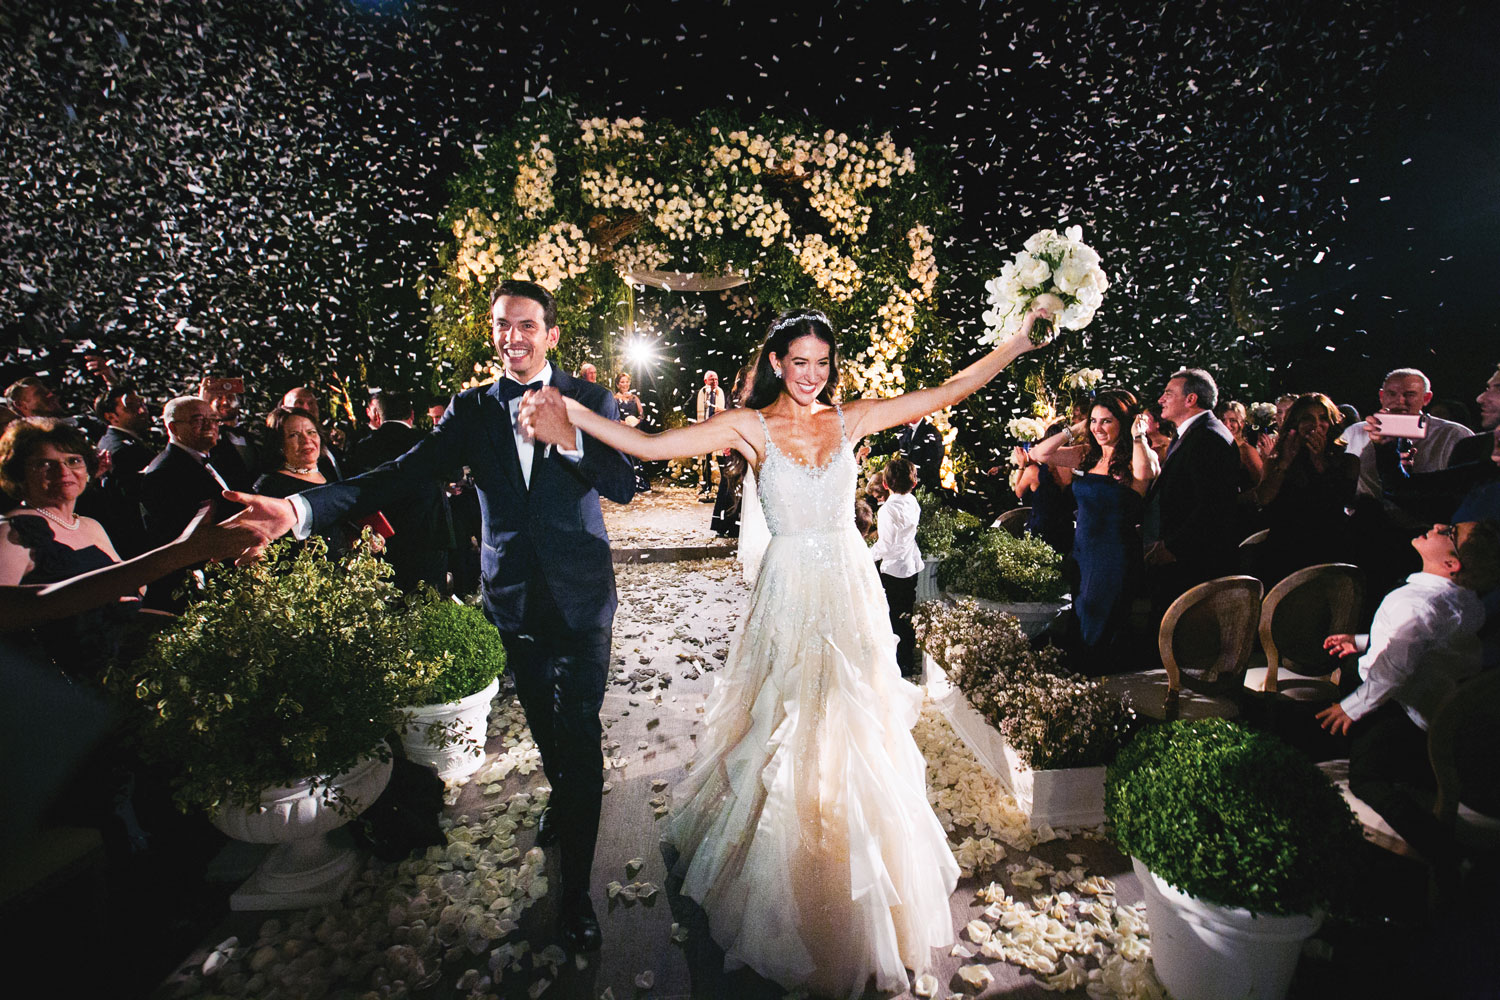 Bride and groom grand exit ceremony recessional levine fox revelry event designers Inside Weddings fall 2018 issue